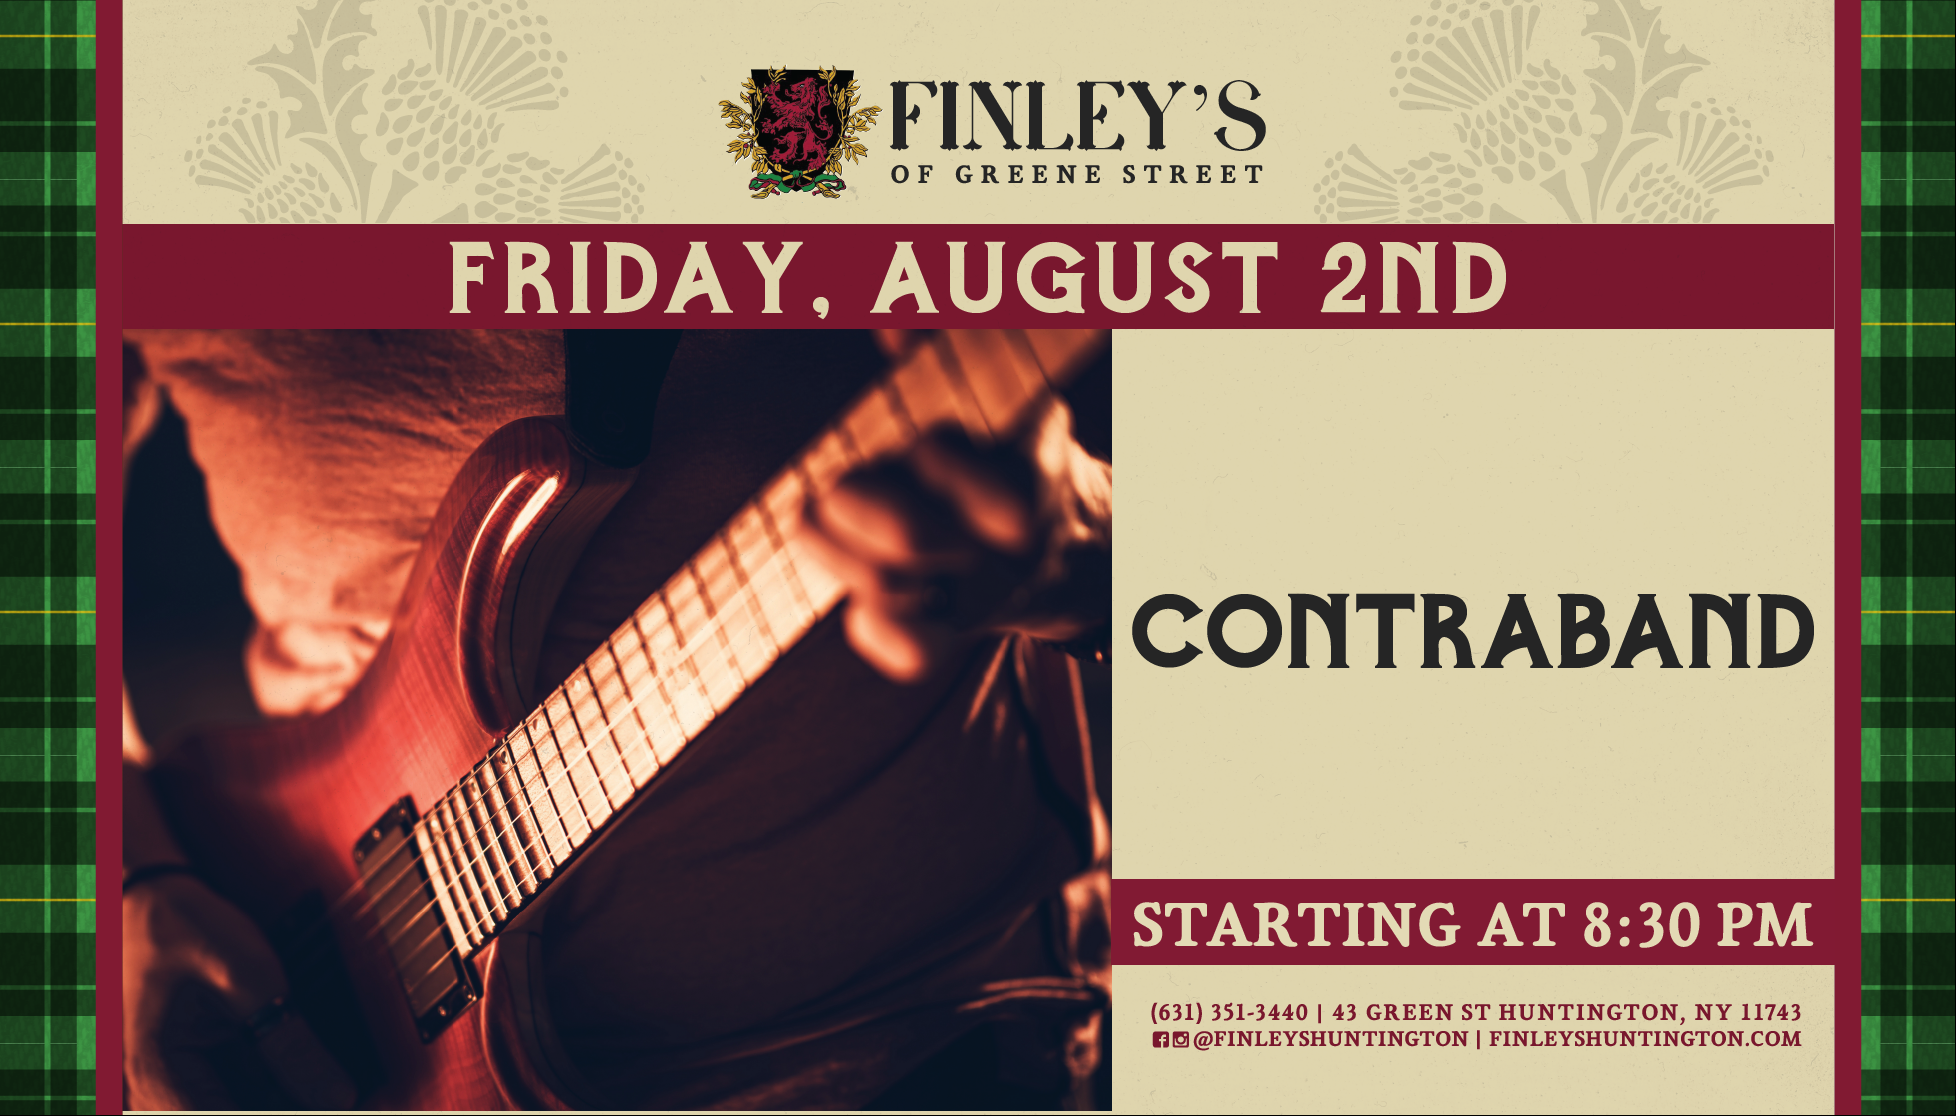 Flyer for live music with Contraband on August 2nd at 8:30pm